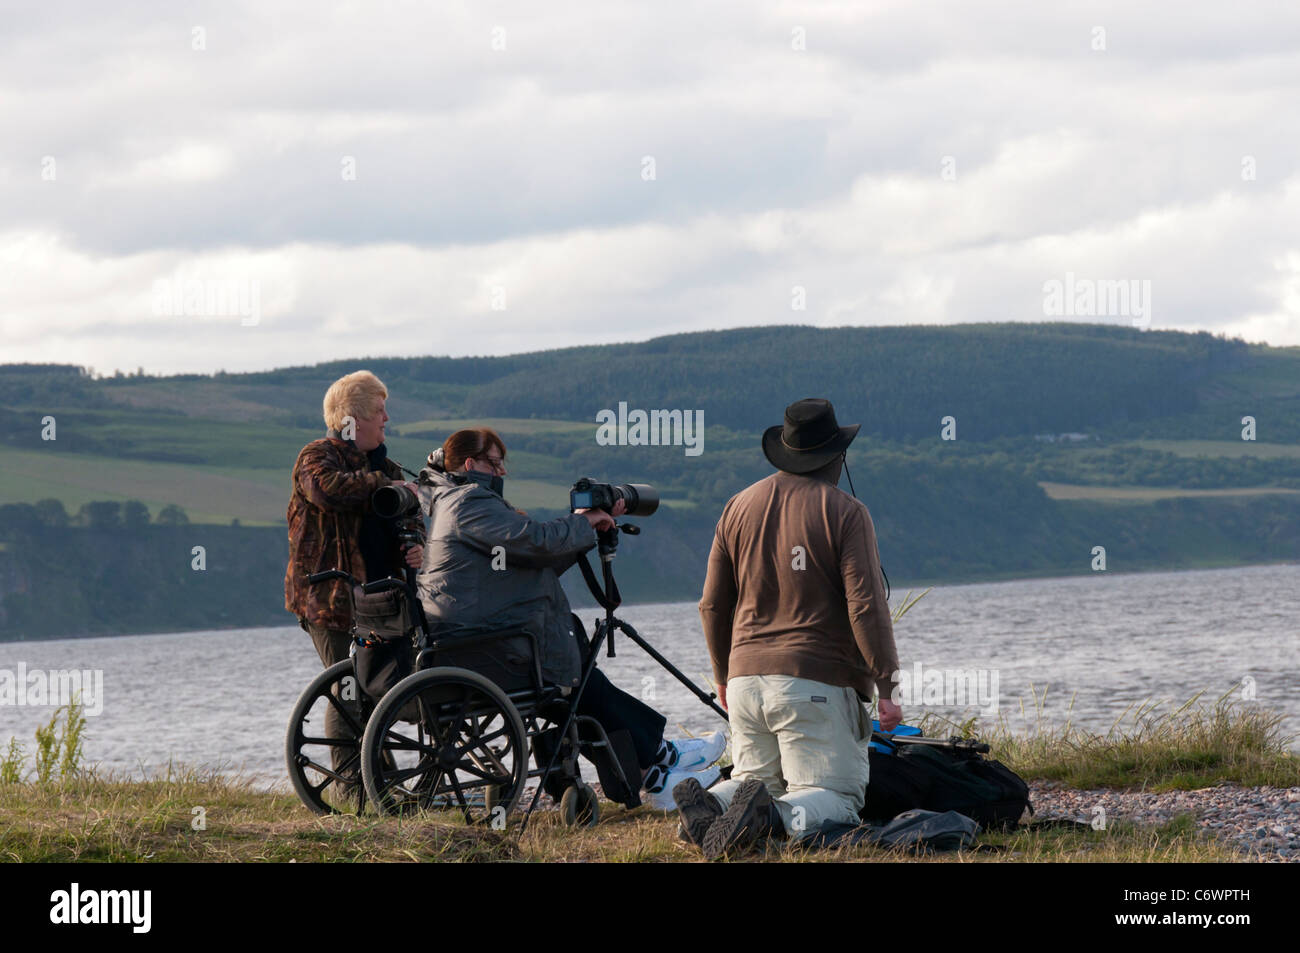 Wildlife photographers at Chanonry Point in Scotland. - Stock Image